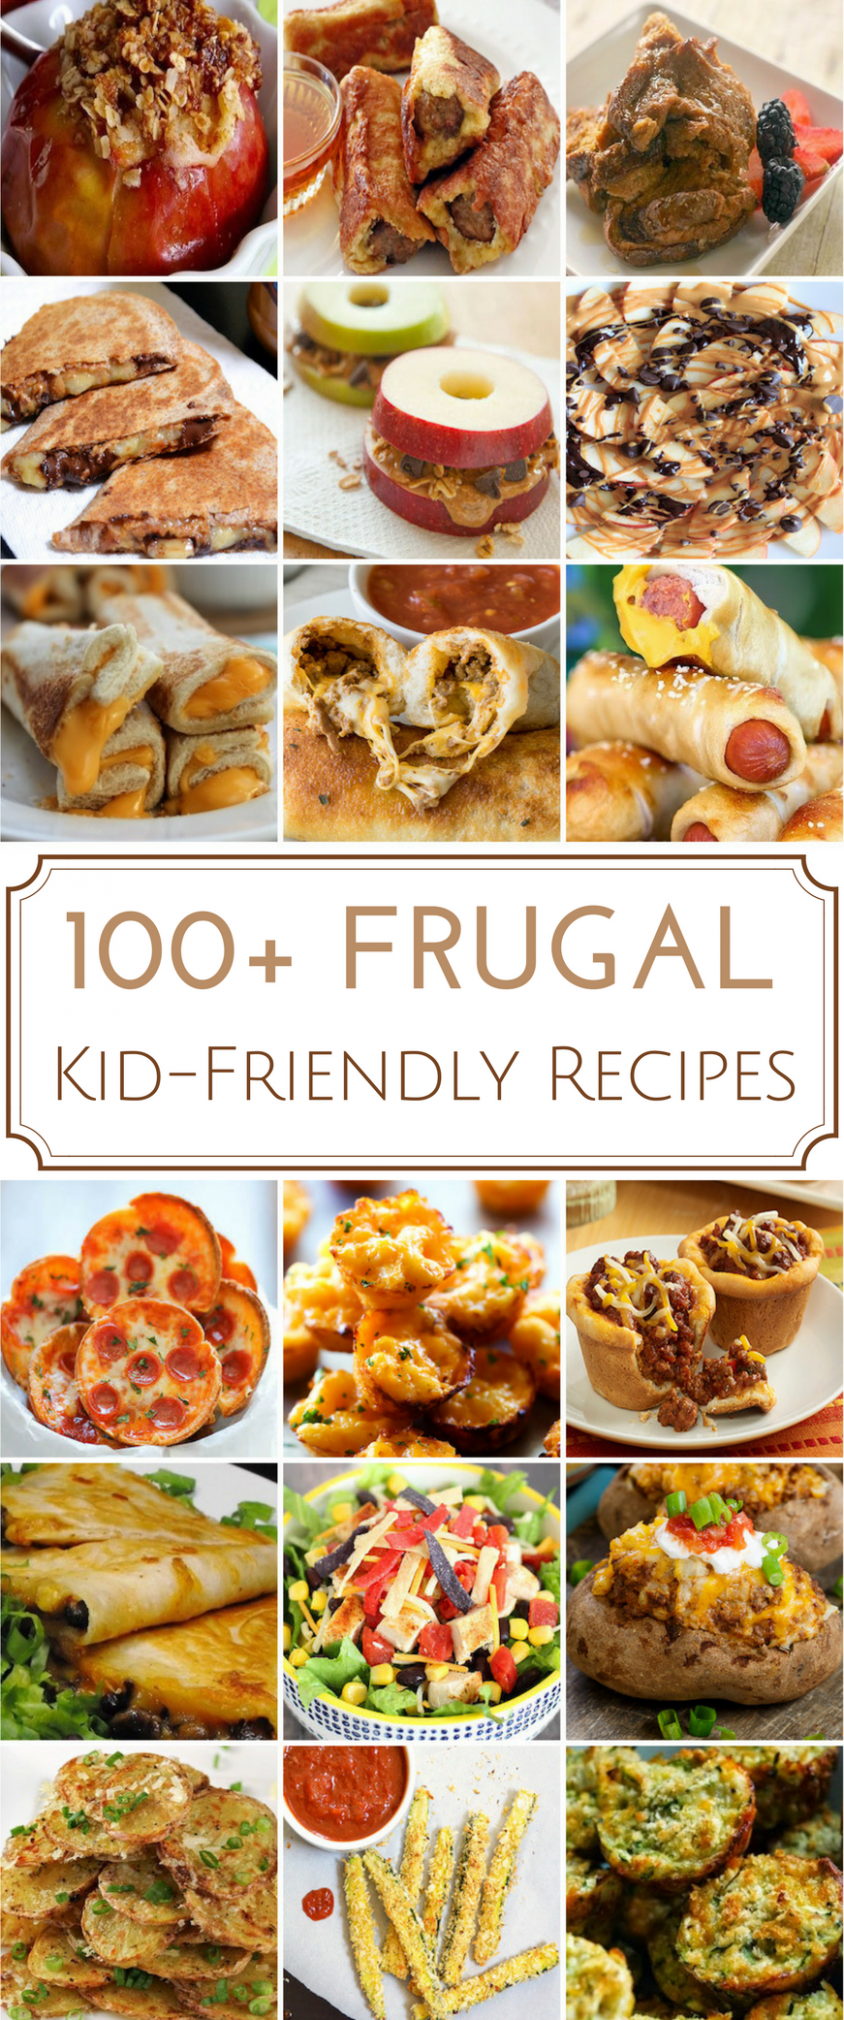 10 Frugal Kid-Friendly Recipes | Kid friendly meals, Picky eaters ...